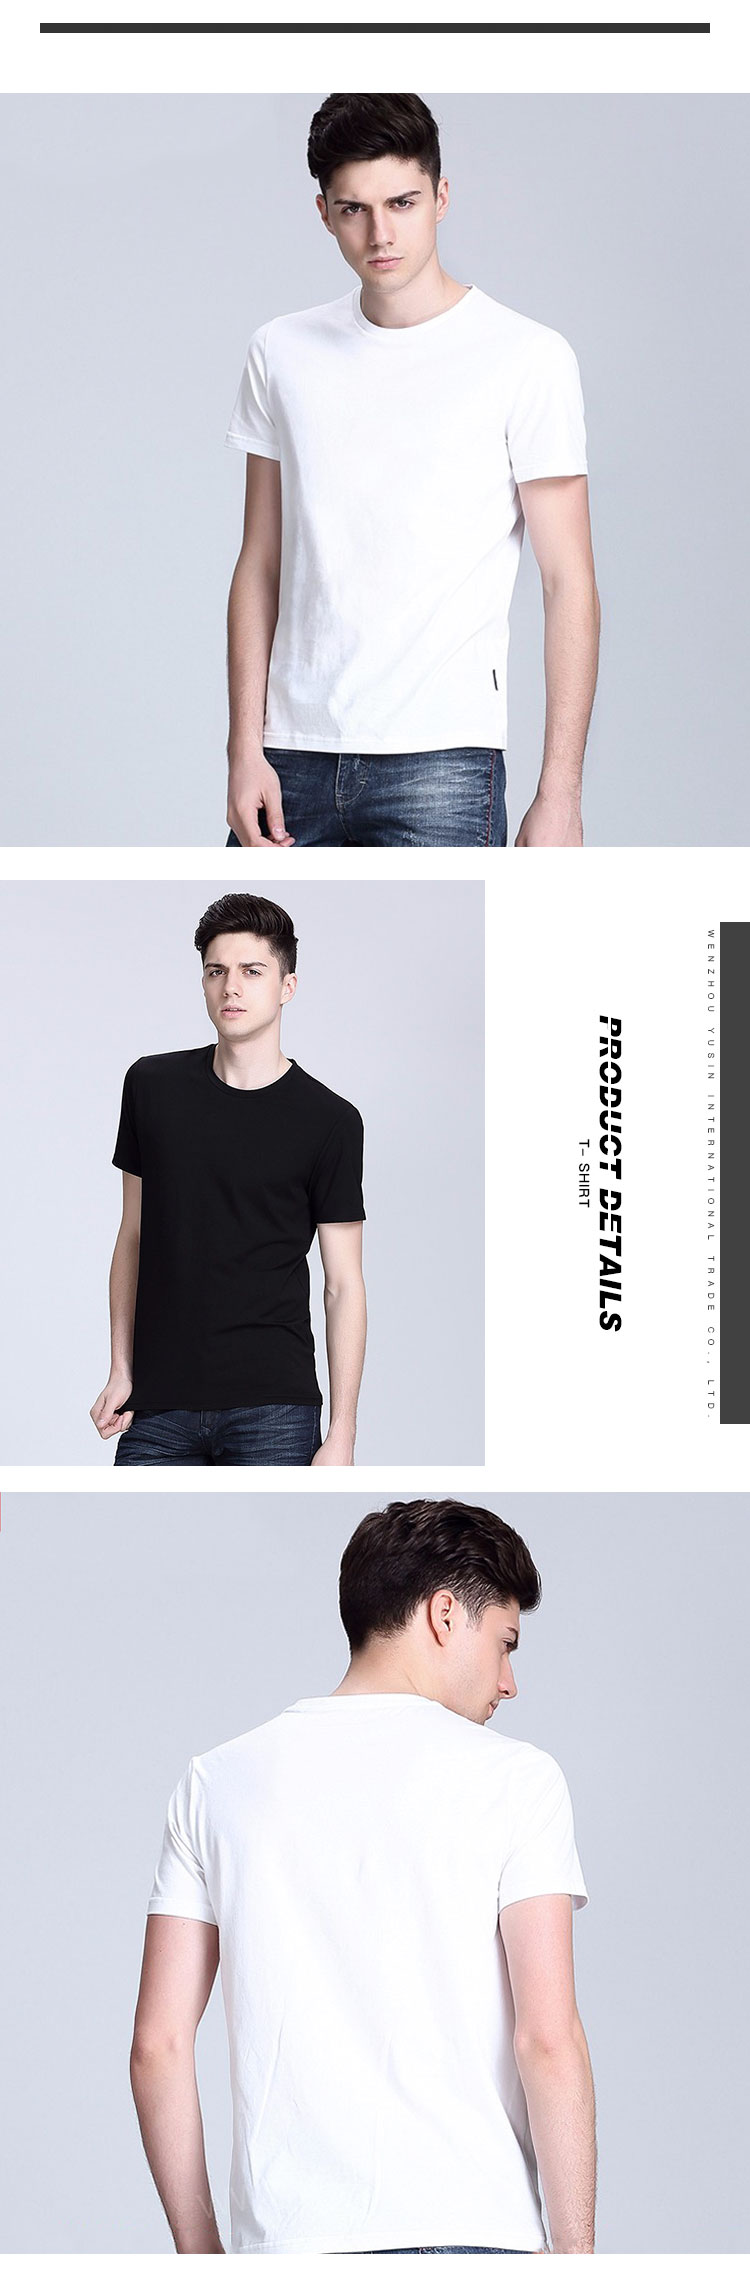 mens fashion factory support OEM custom wholesale compression fabric white t-shirt